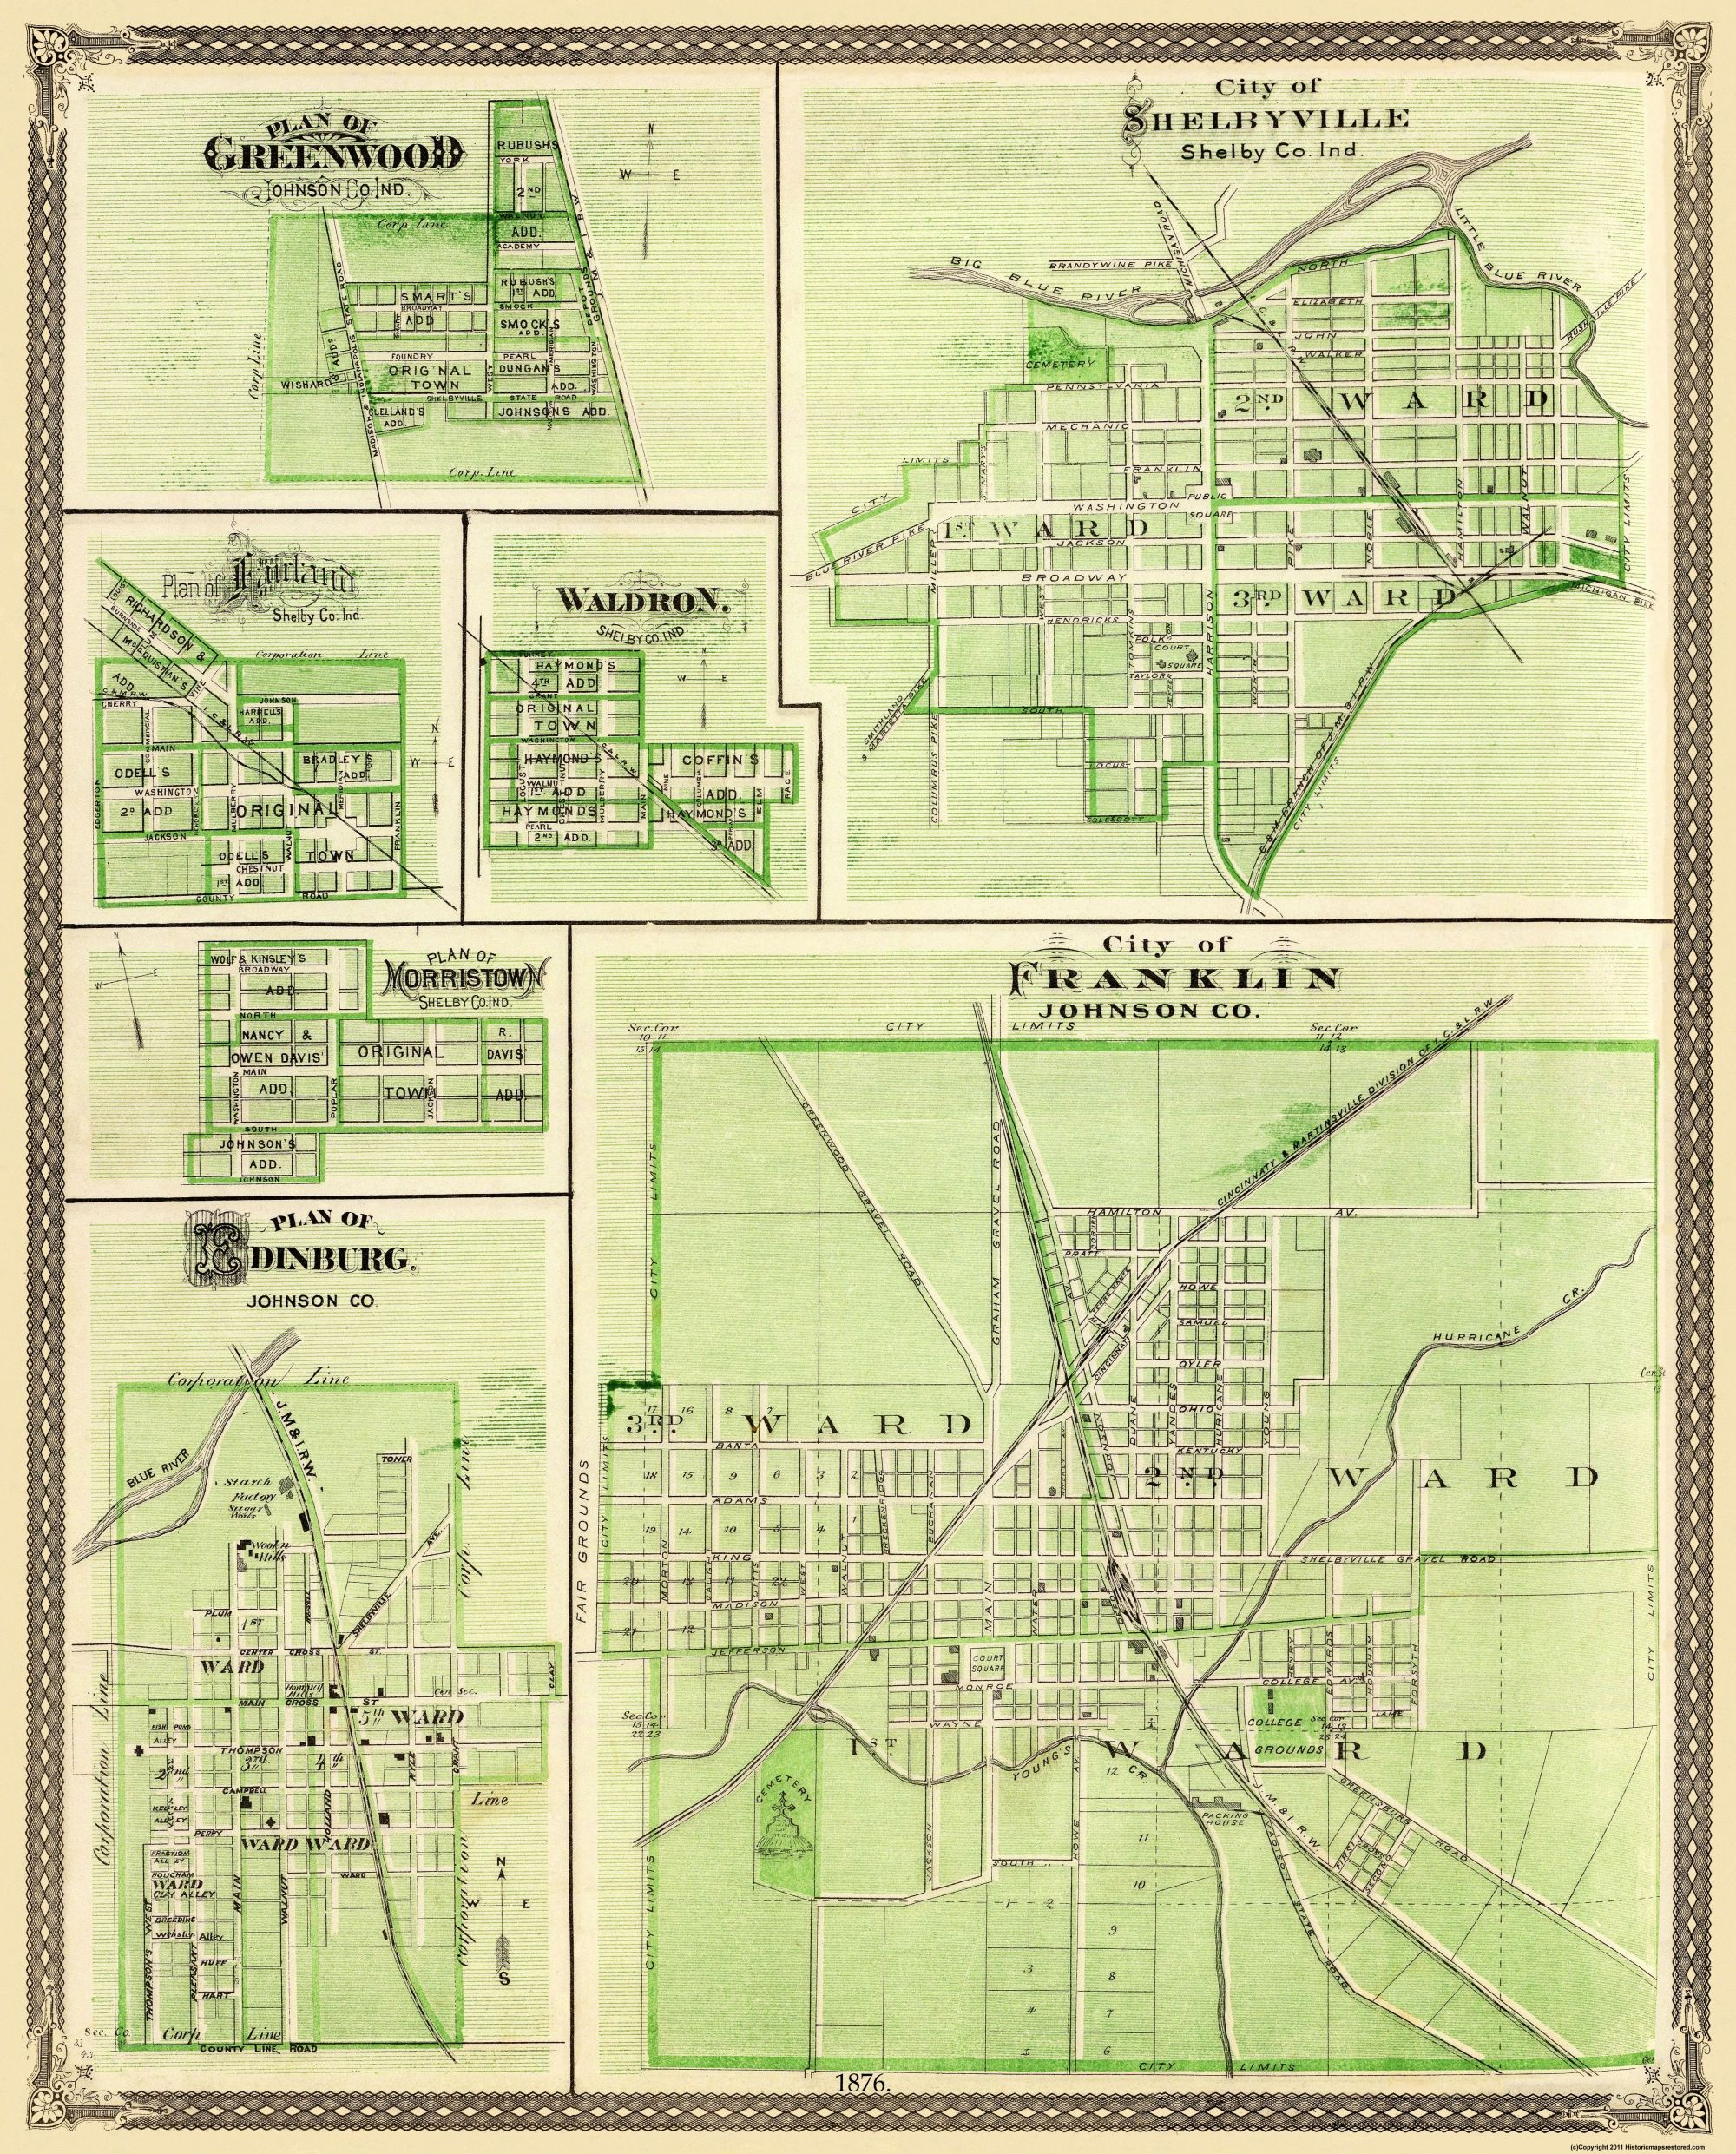 Old City Map Franklin Shelbyville Greenwood Indiana 1876 23 X